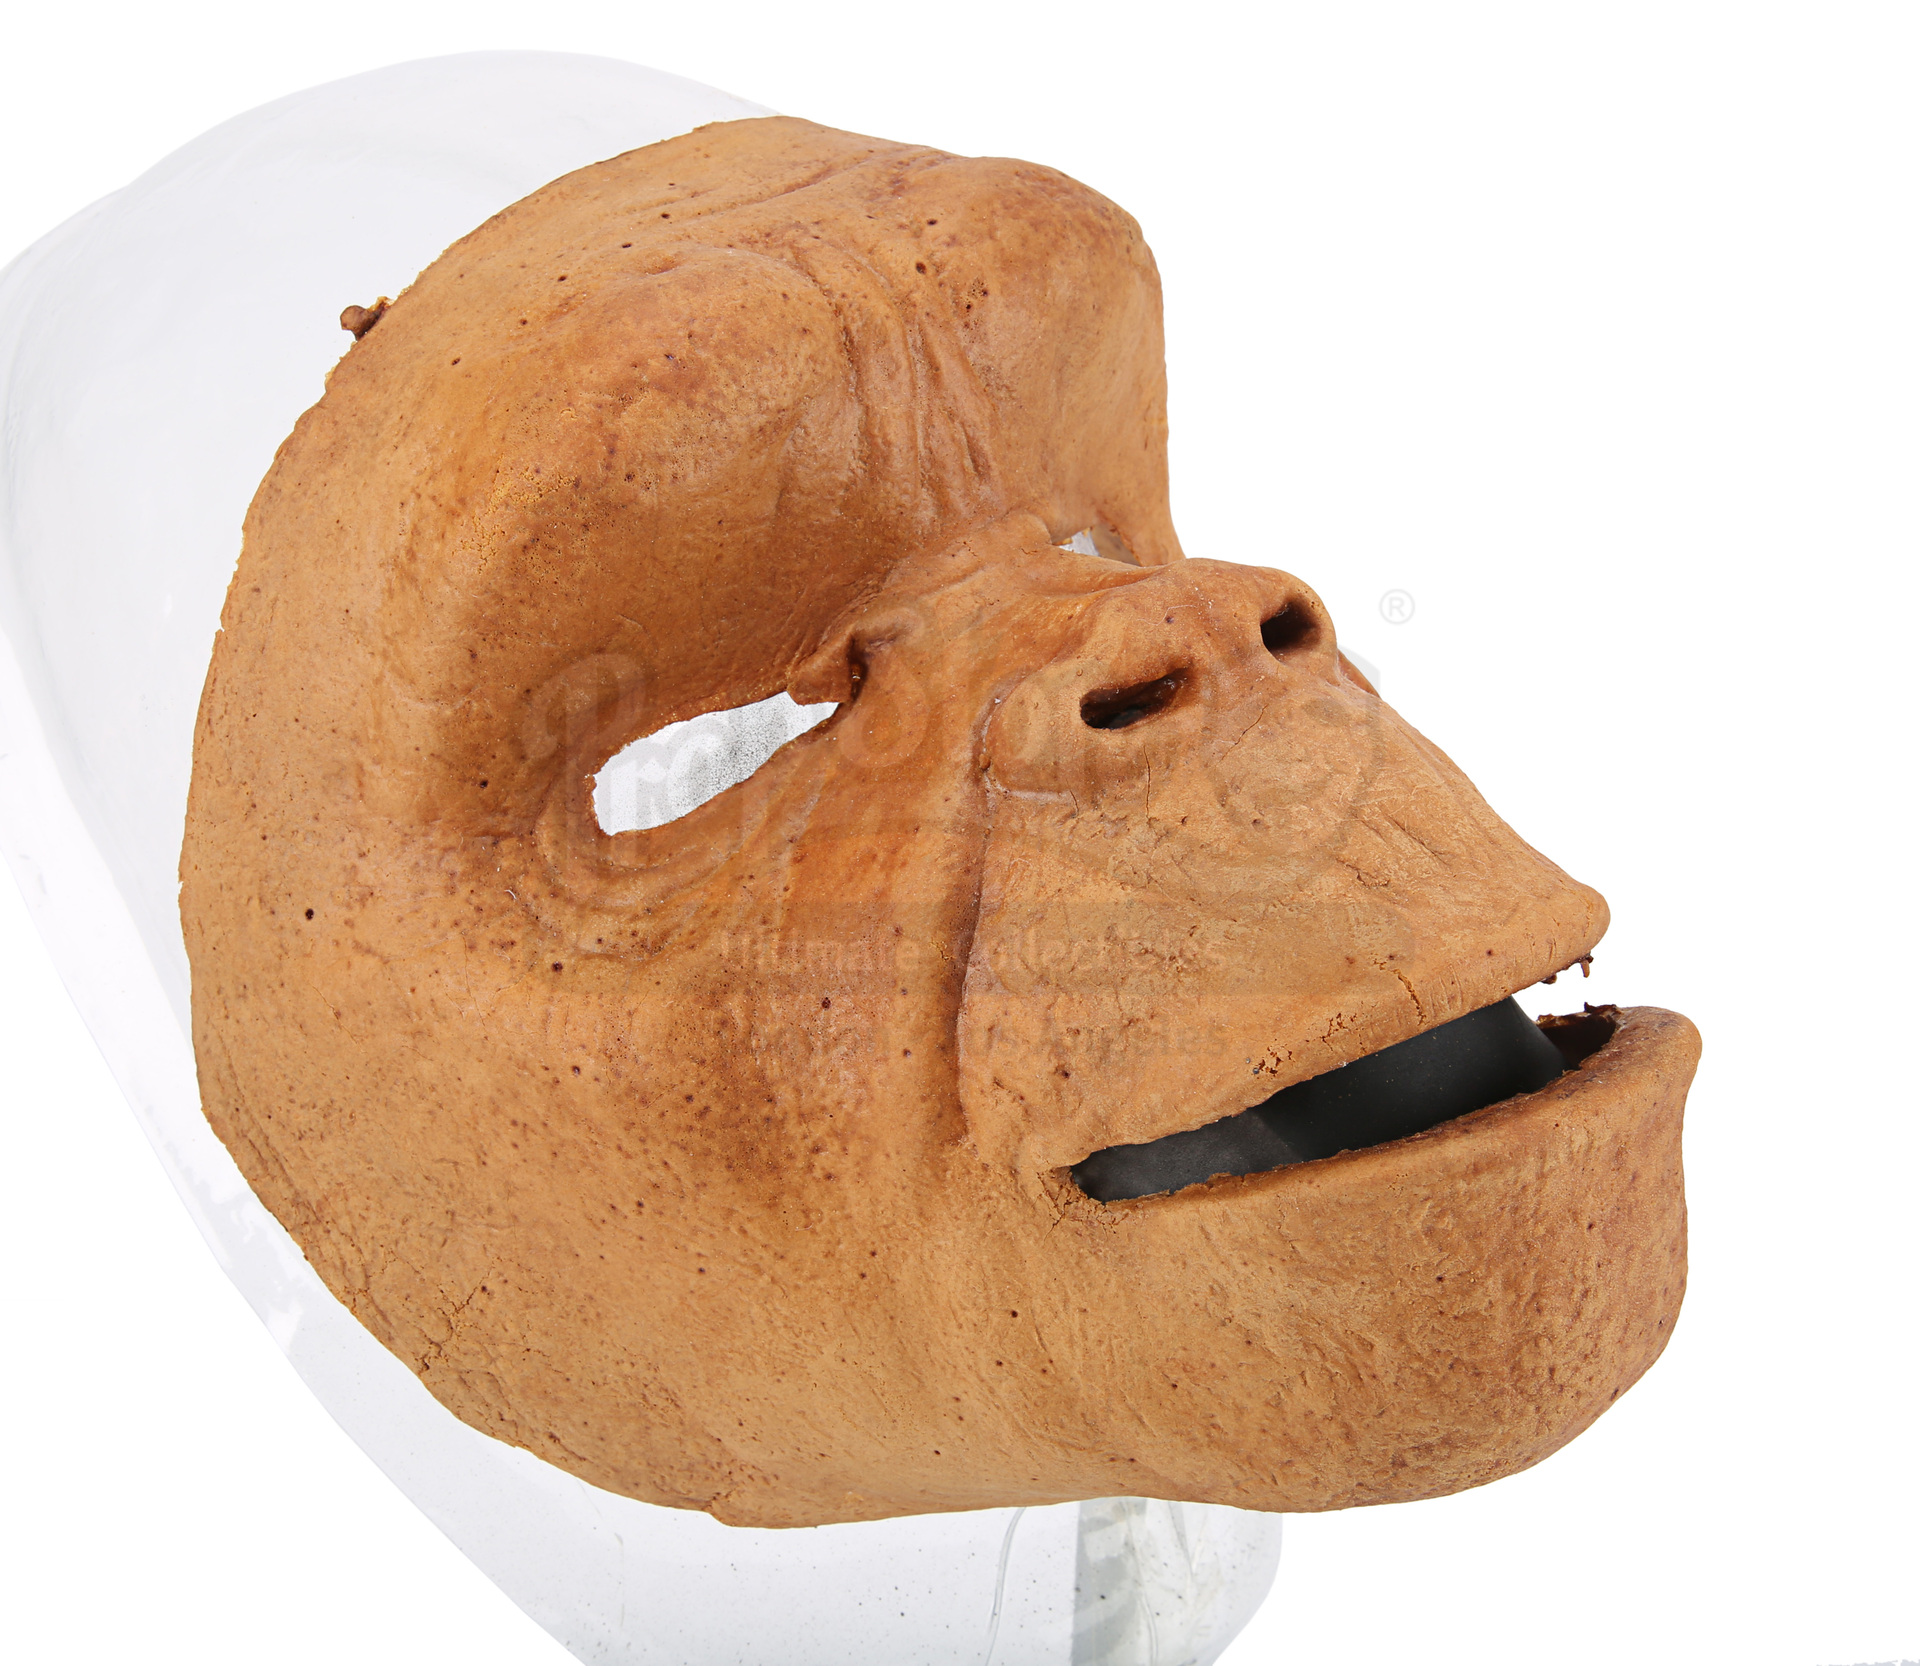 2001: A SPACE ODYSSEY (1968) - Dawn of Man Ape Mask - Image 8 of 12